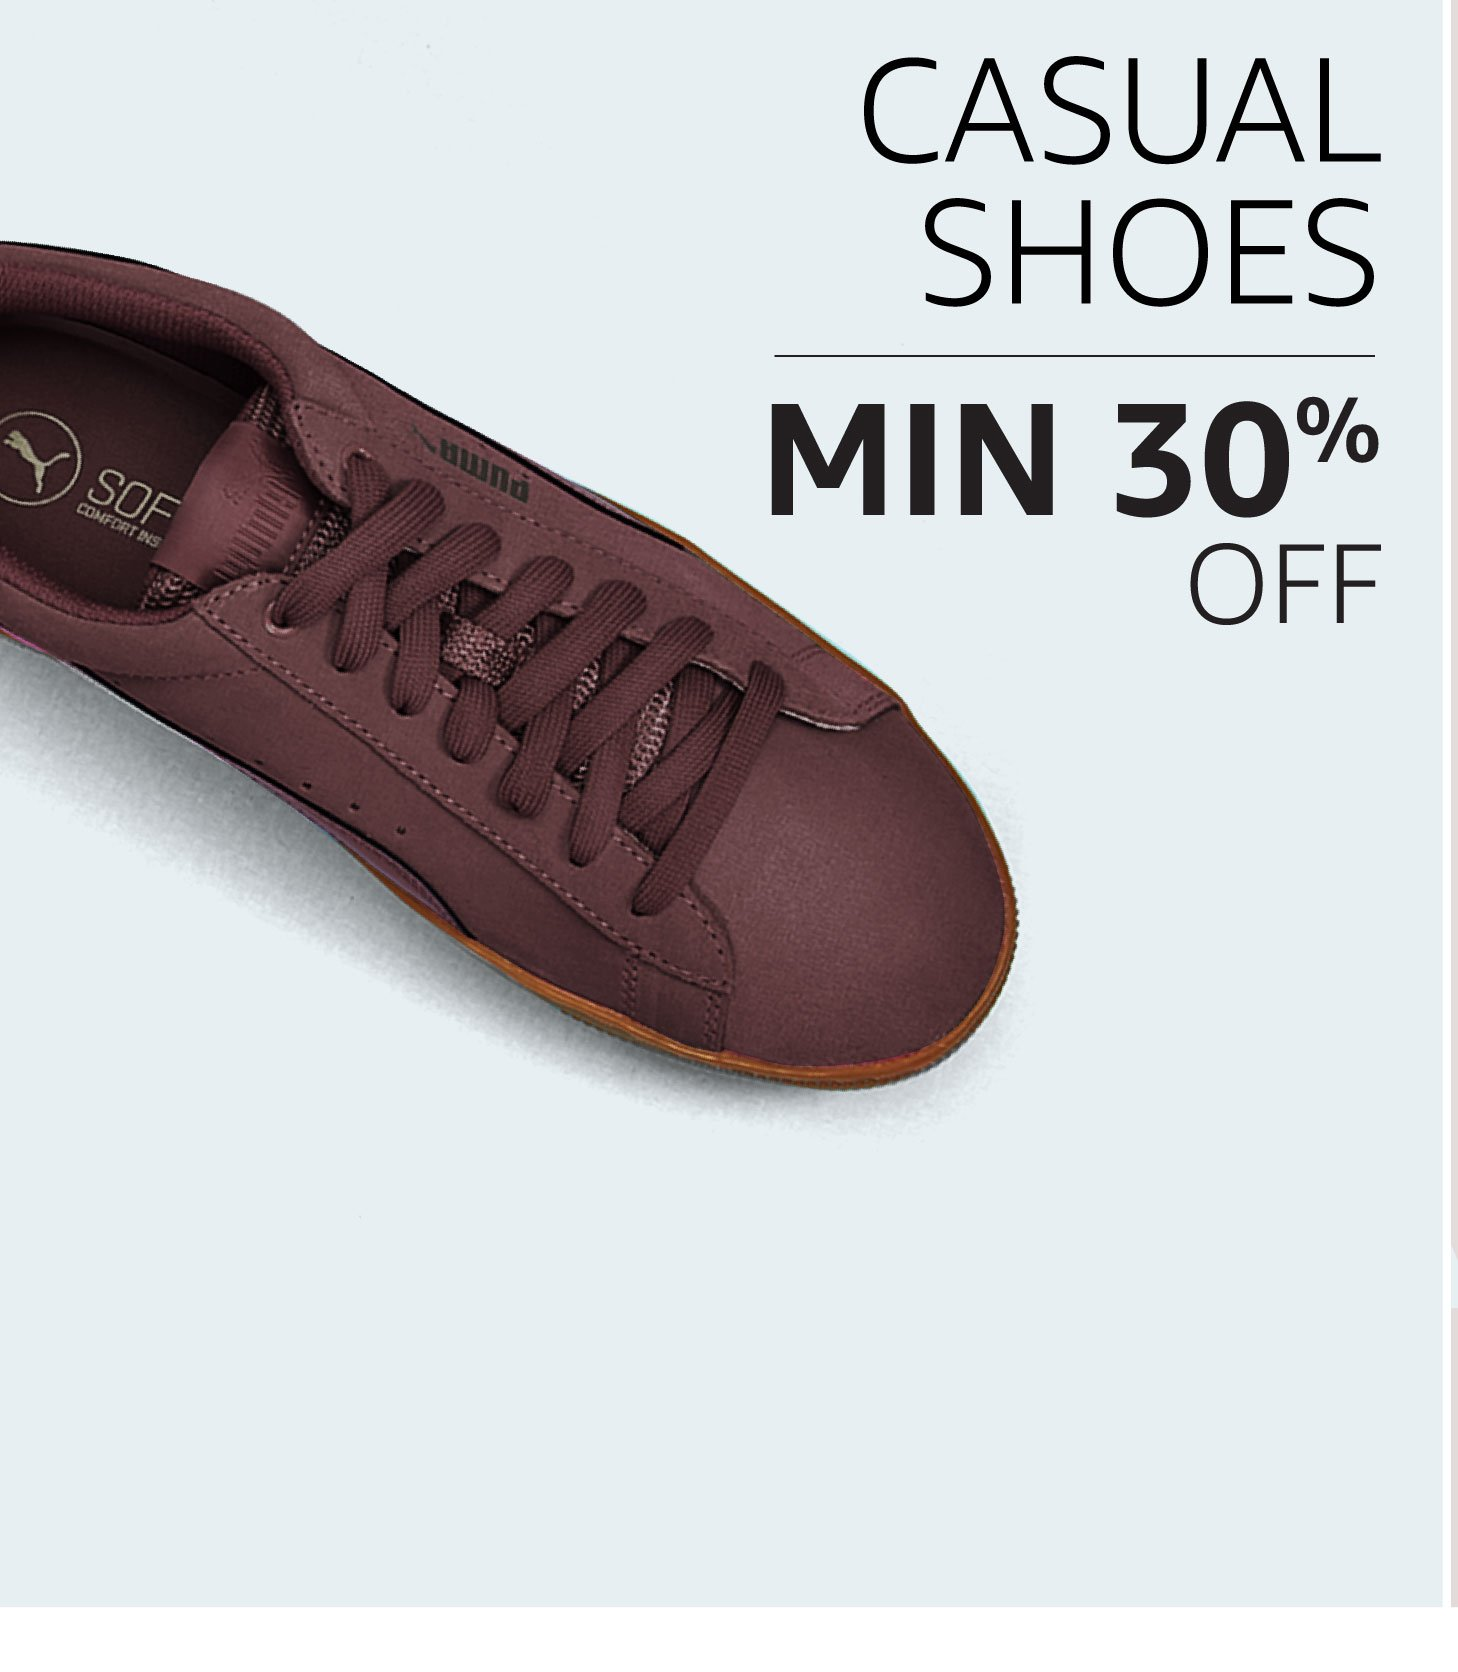 Casual Shoes: Minimum 30% off